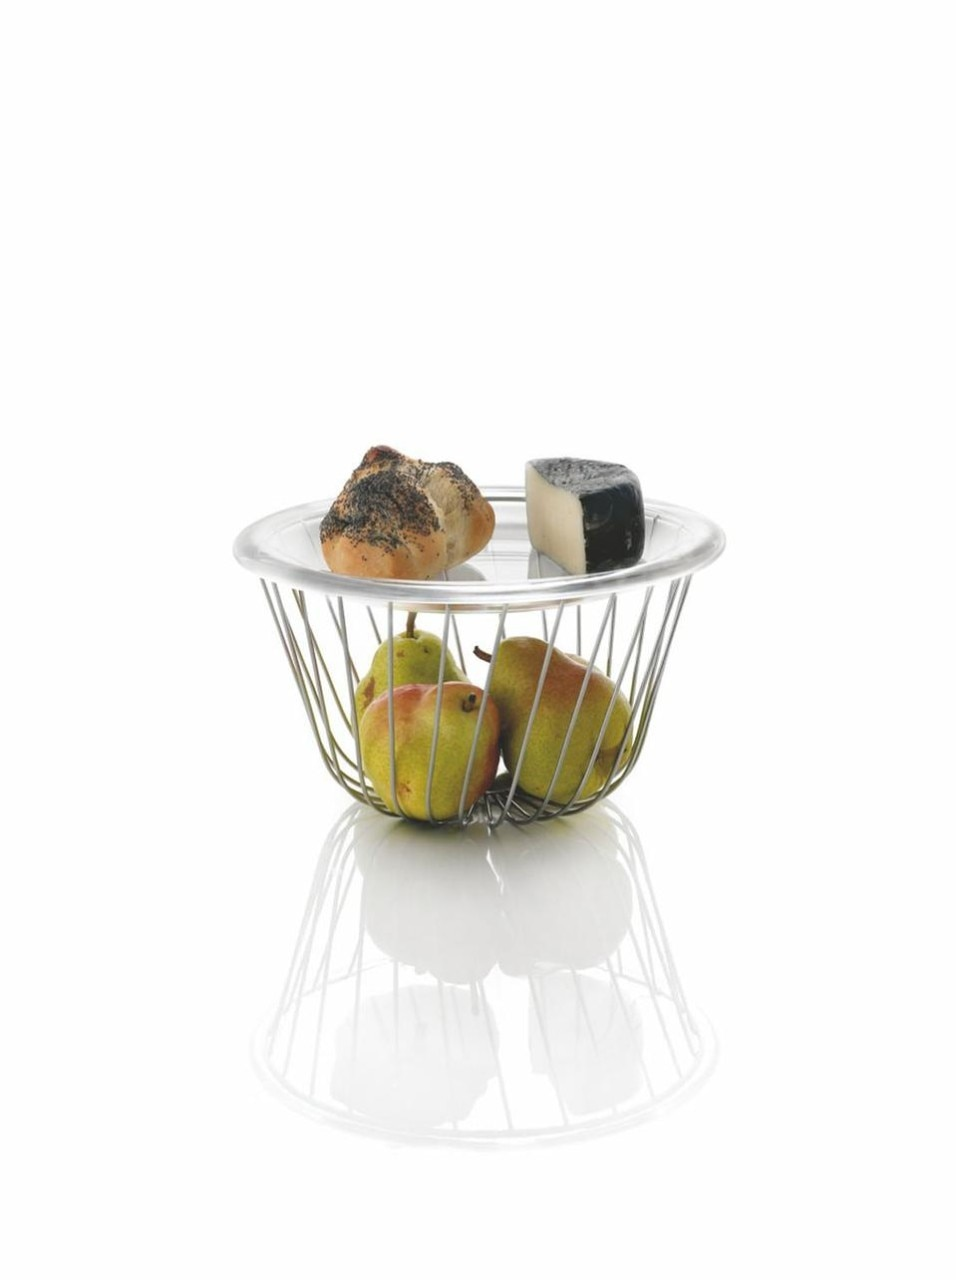 A tempo by pauline deltour for alessi - Alessi fruit basket ...